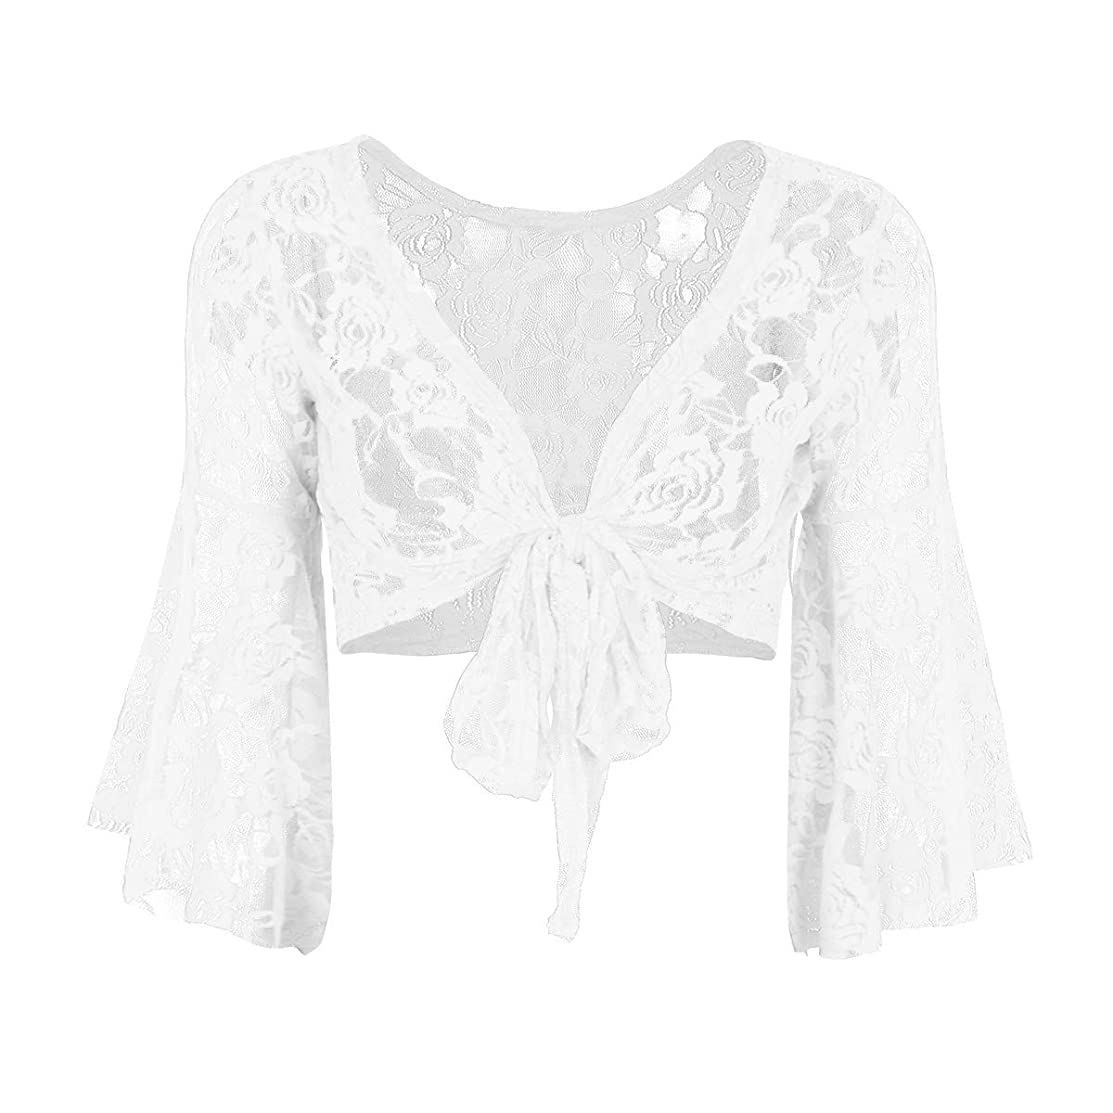 FEESHOW Women's Bell 3/4 Length Butterfly Sleeves Front Tie Lace Bolero Cropped Shrug Top